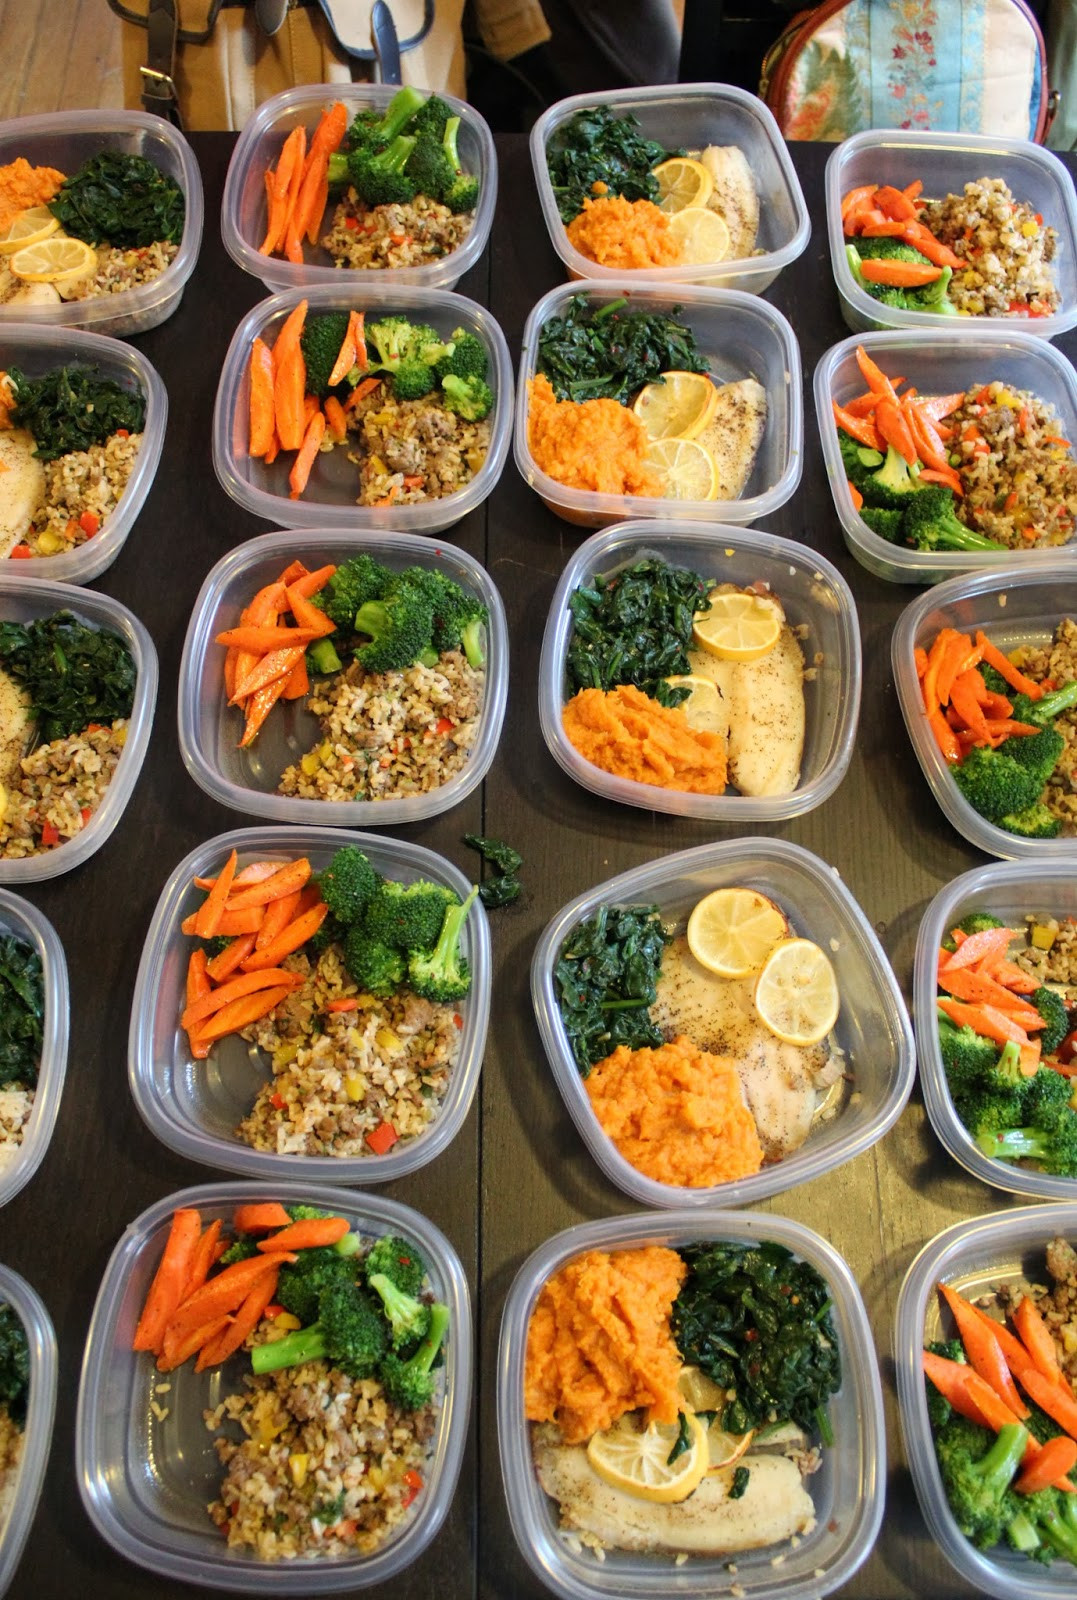 Cheap Healthy Lunches  How Meal Plans Can Help You Maintain Your Weight Loss